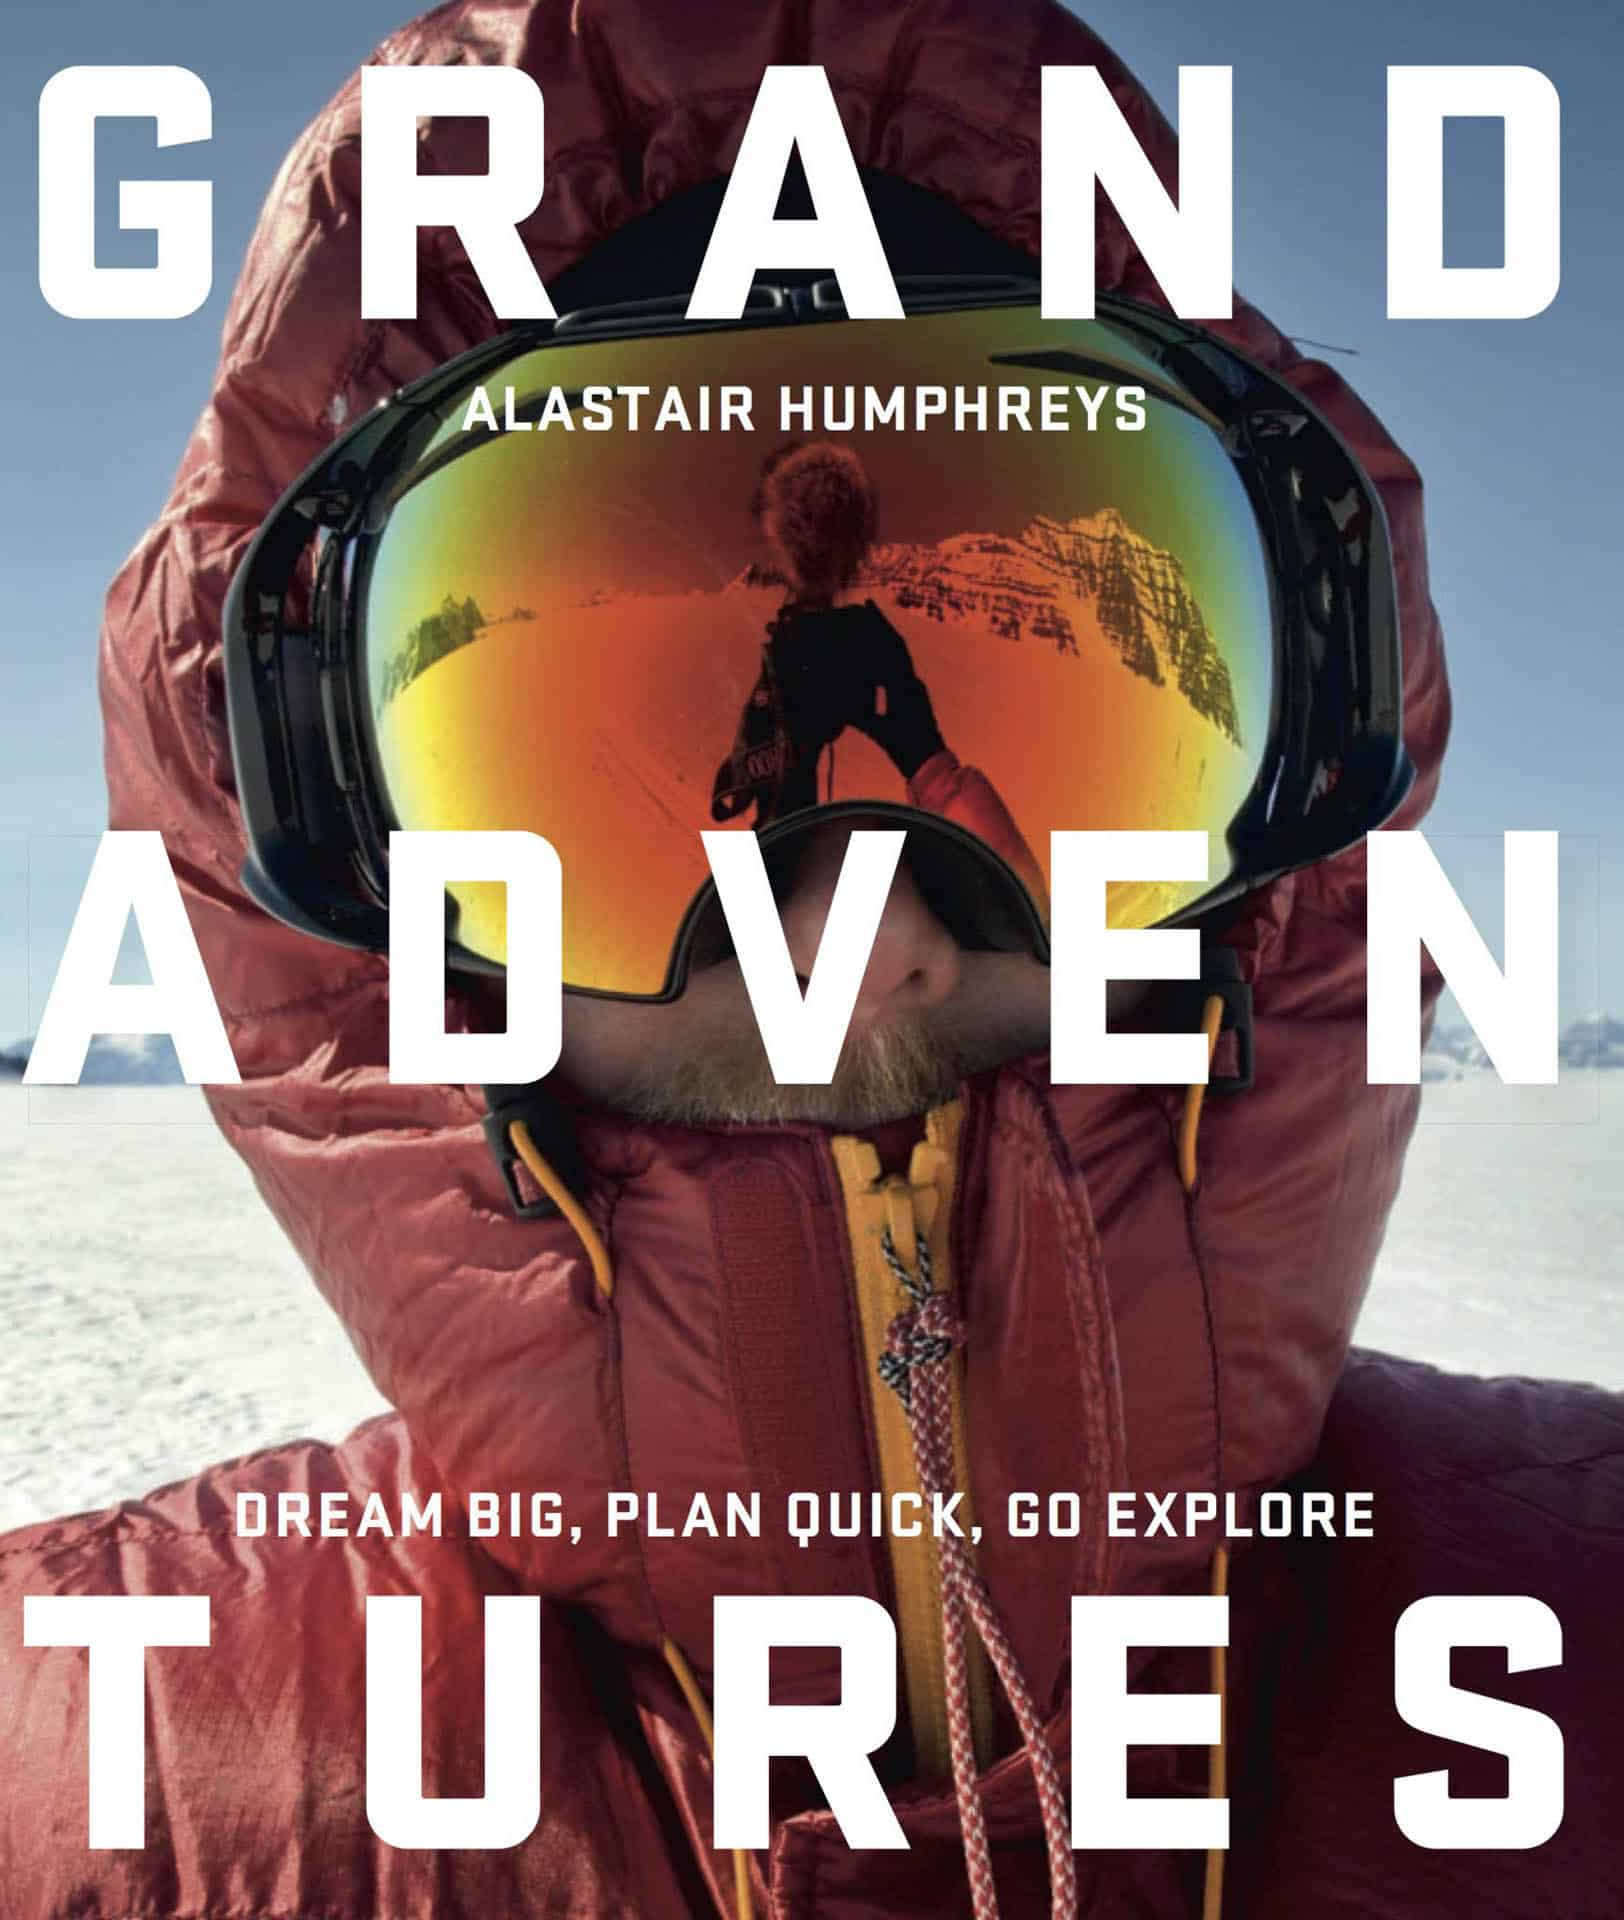 Grand Adventures by Alastair Humphreys